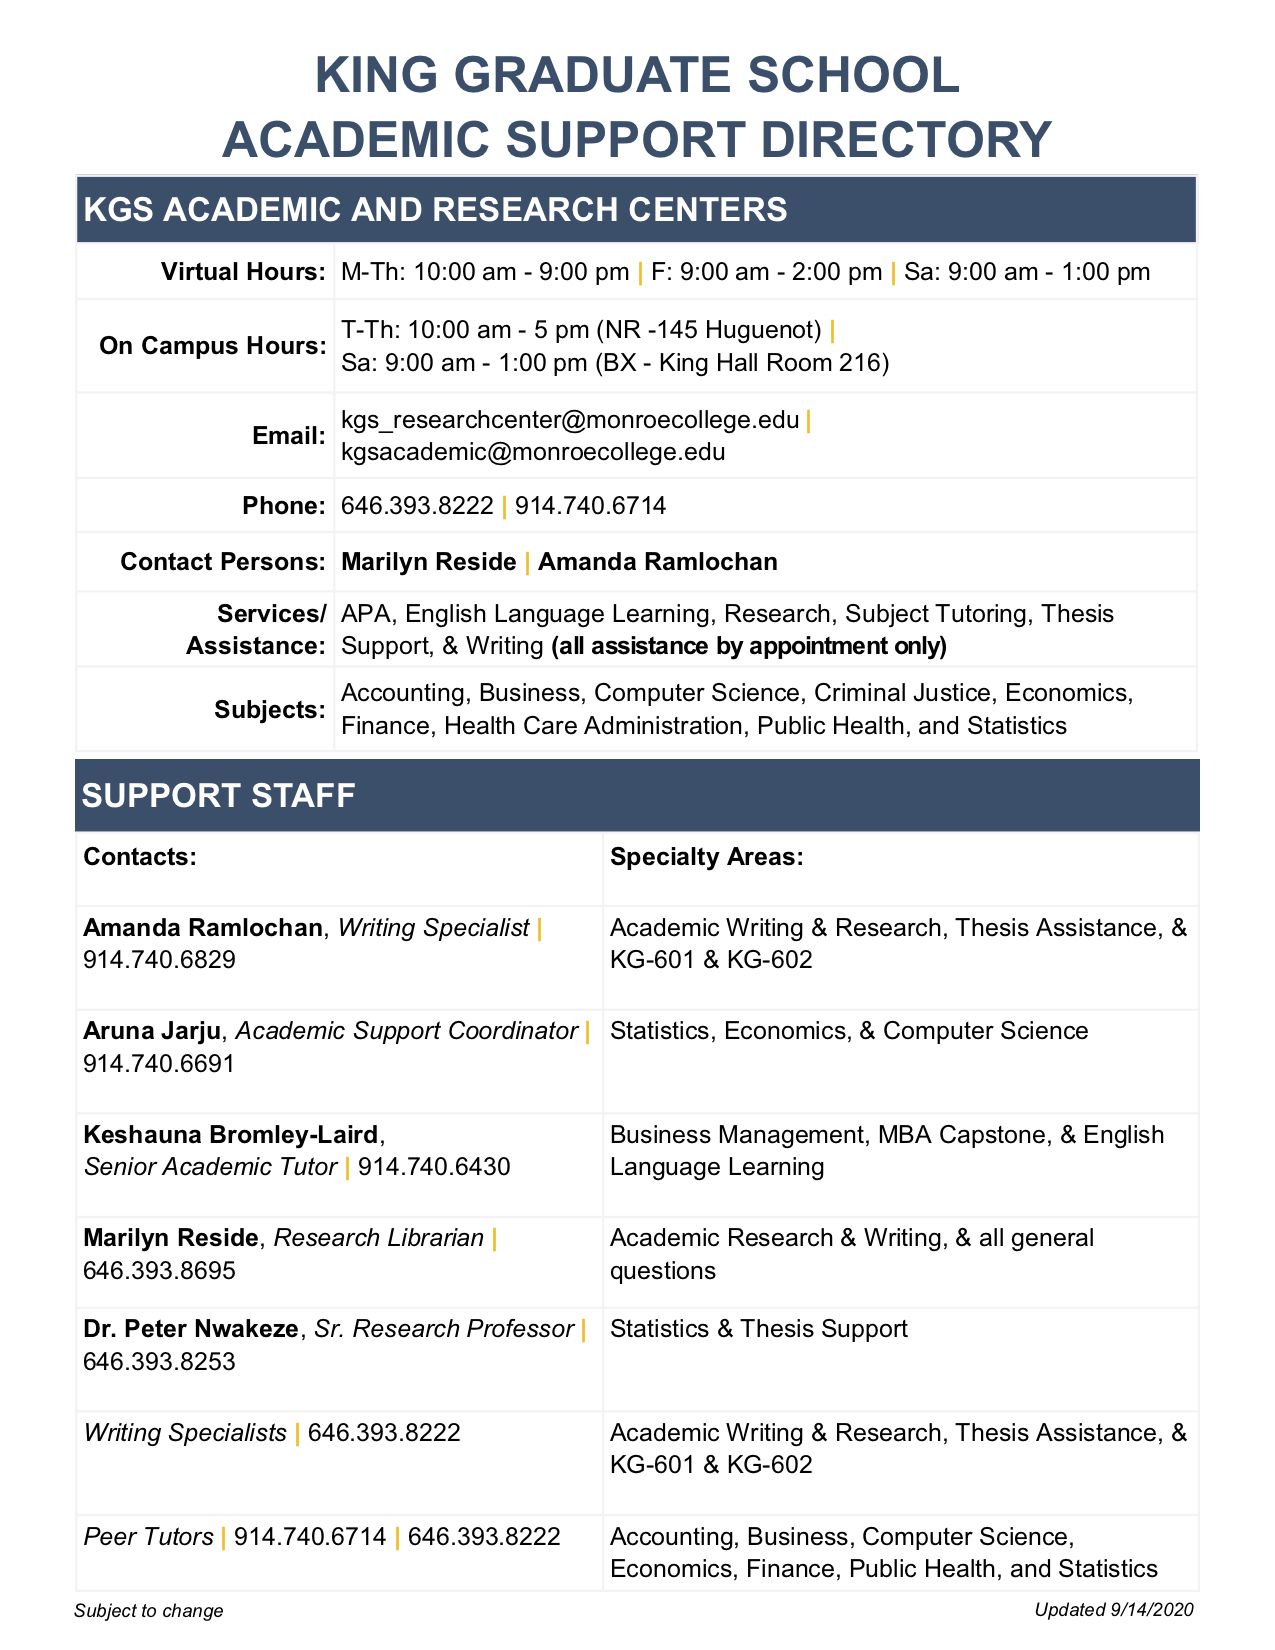 King Graduate School and Graduate Research Center Academic Support Directory